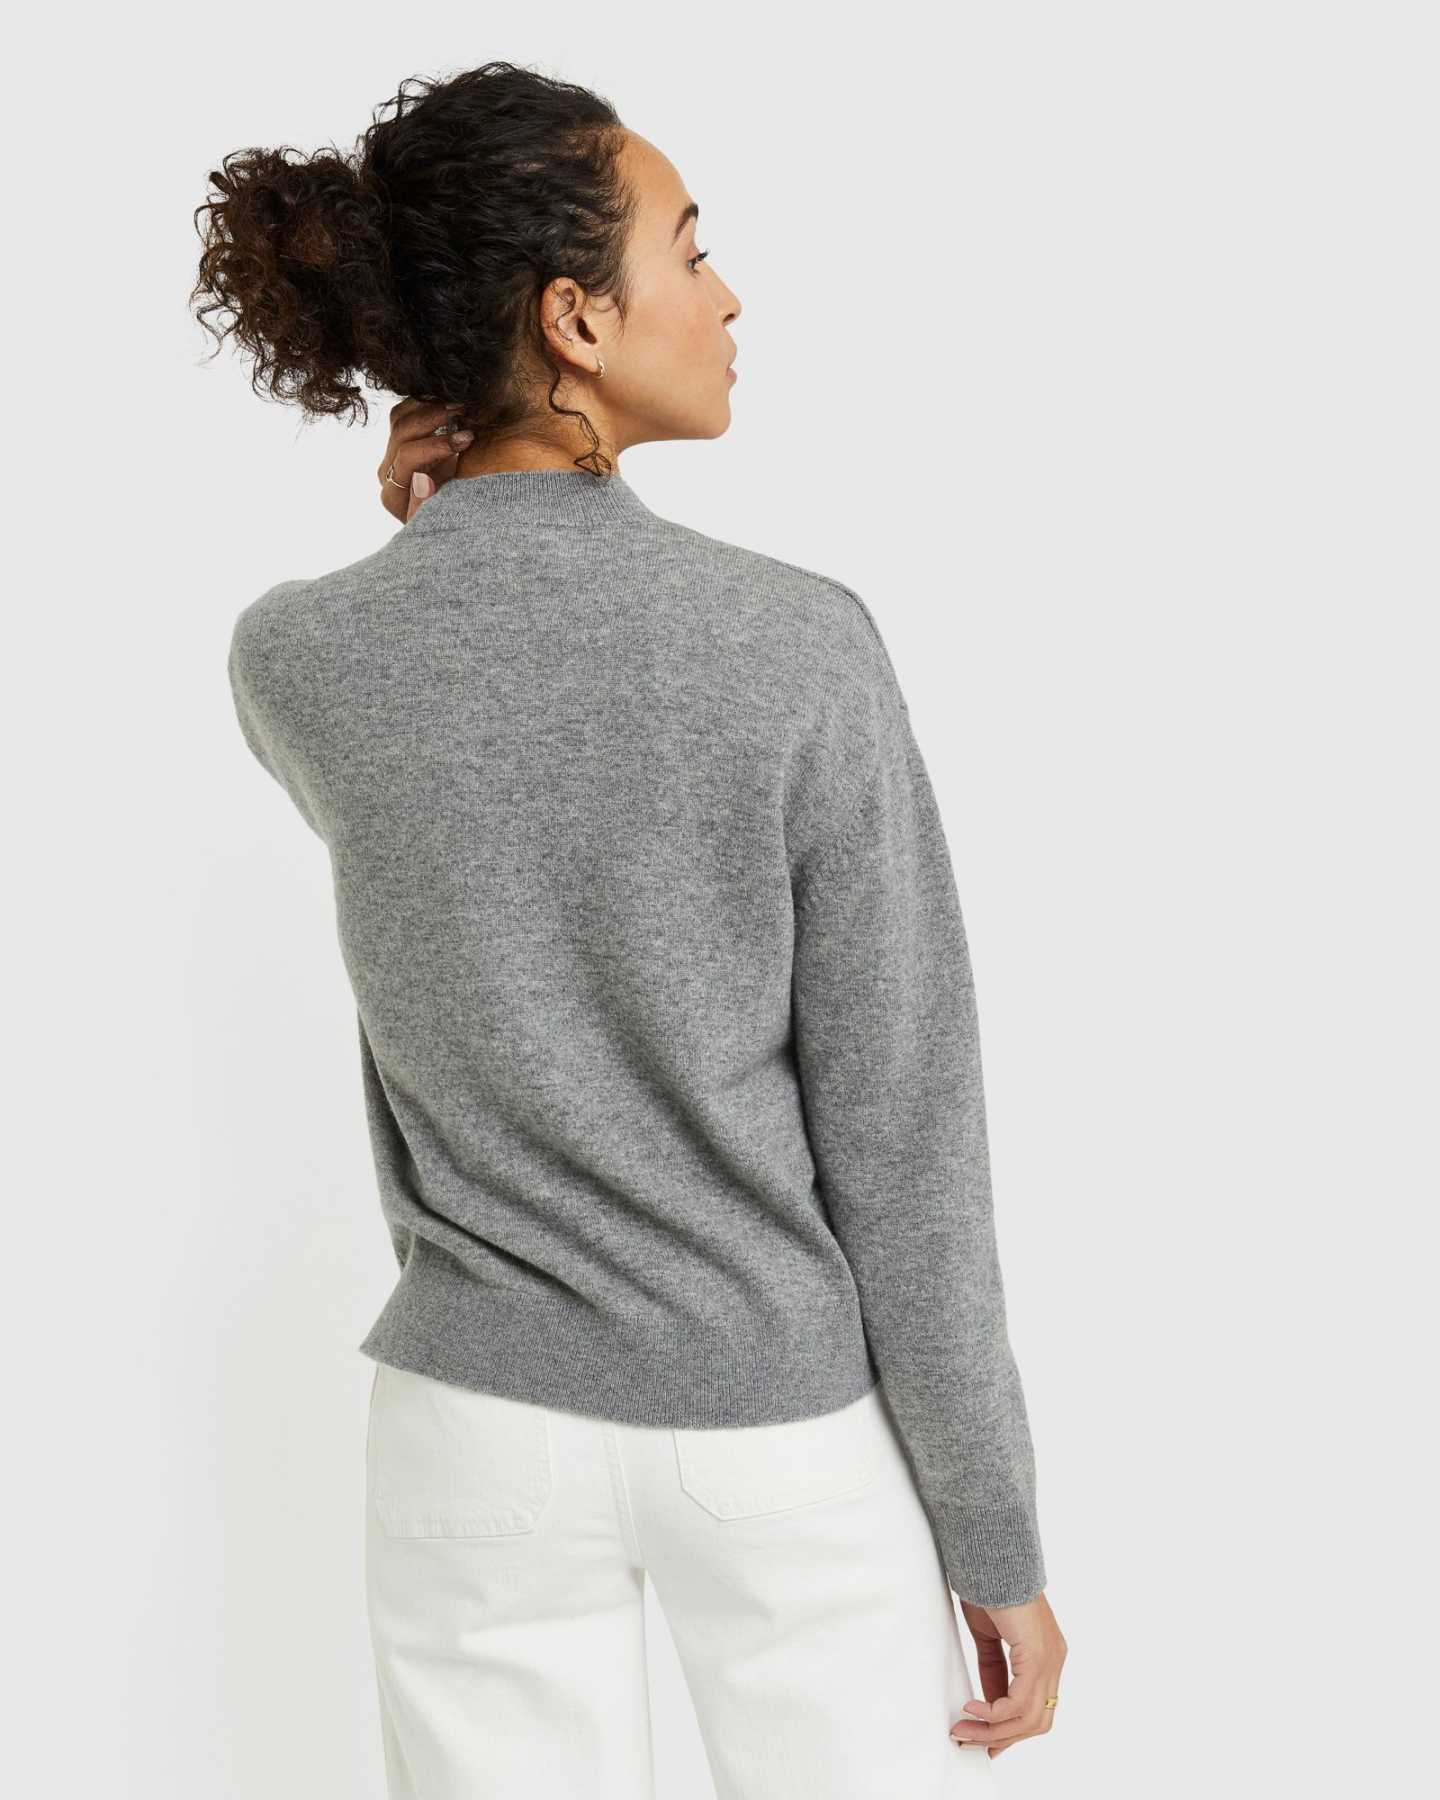 Woman wearing grey cashmere mockneck sweater toucing her neck